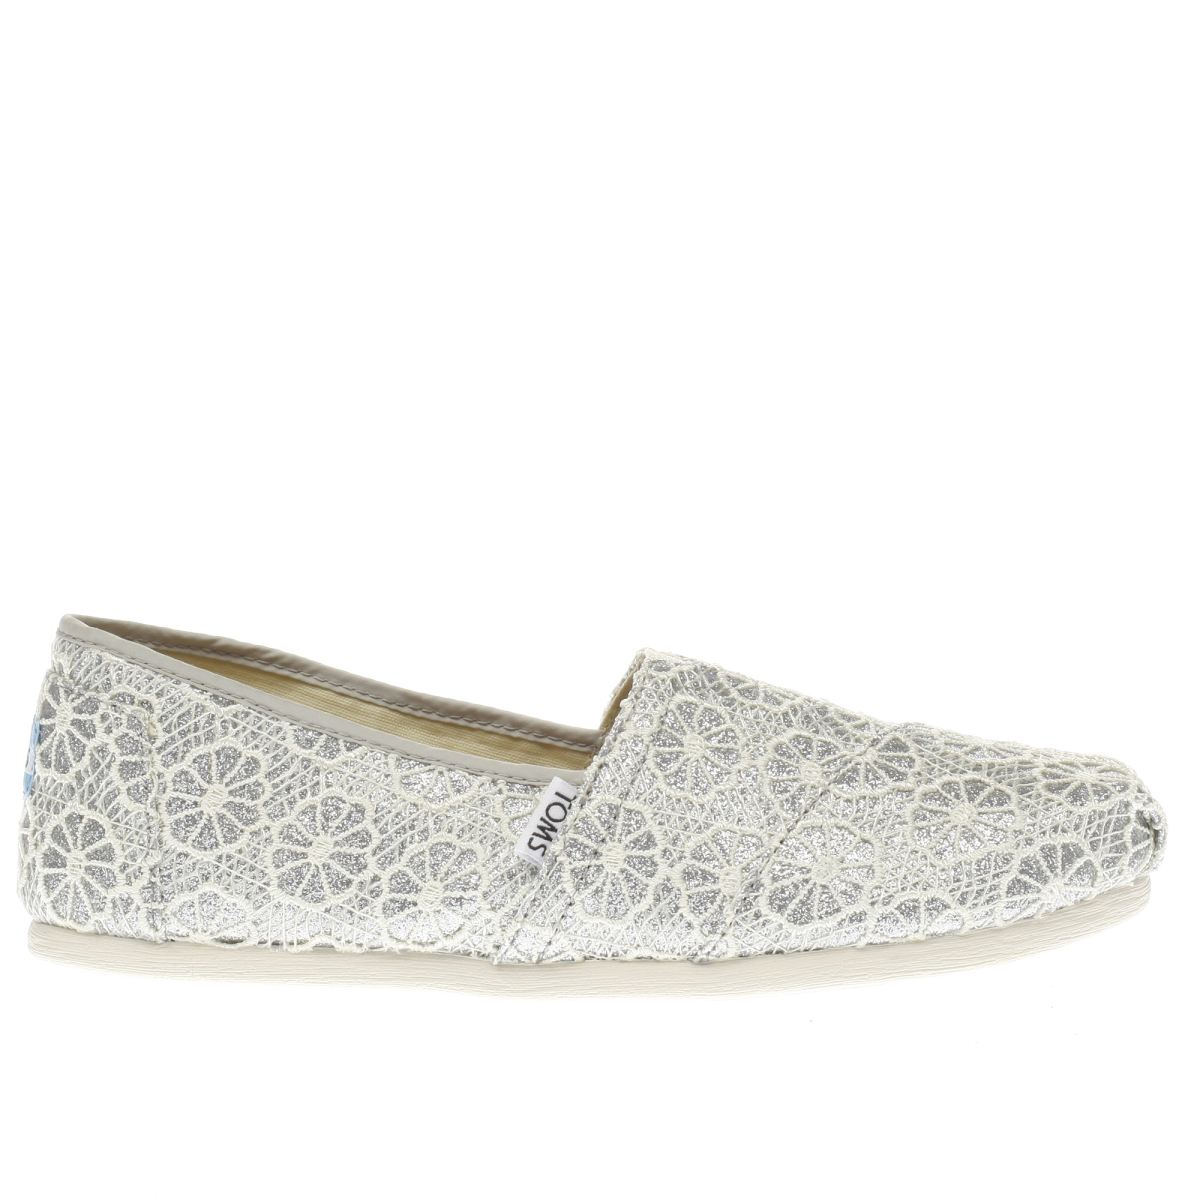 toms silver crochet glitter flat shoes